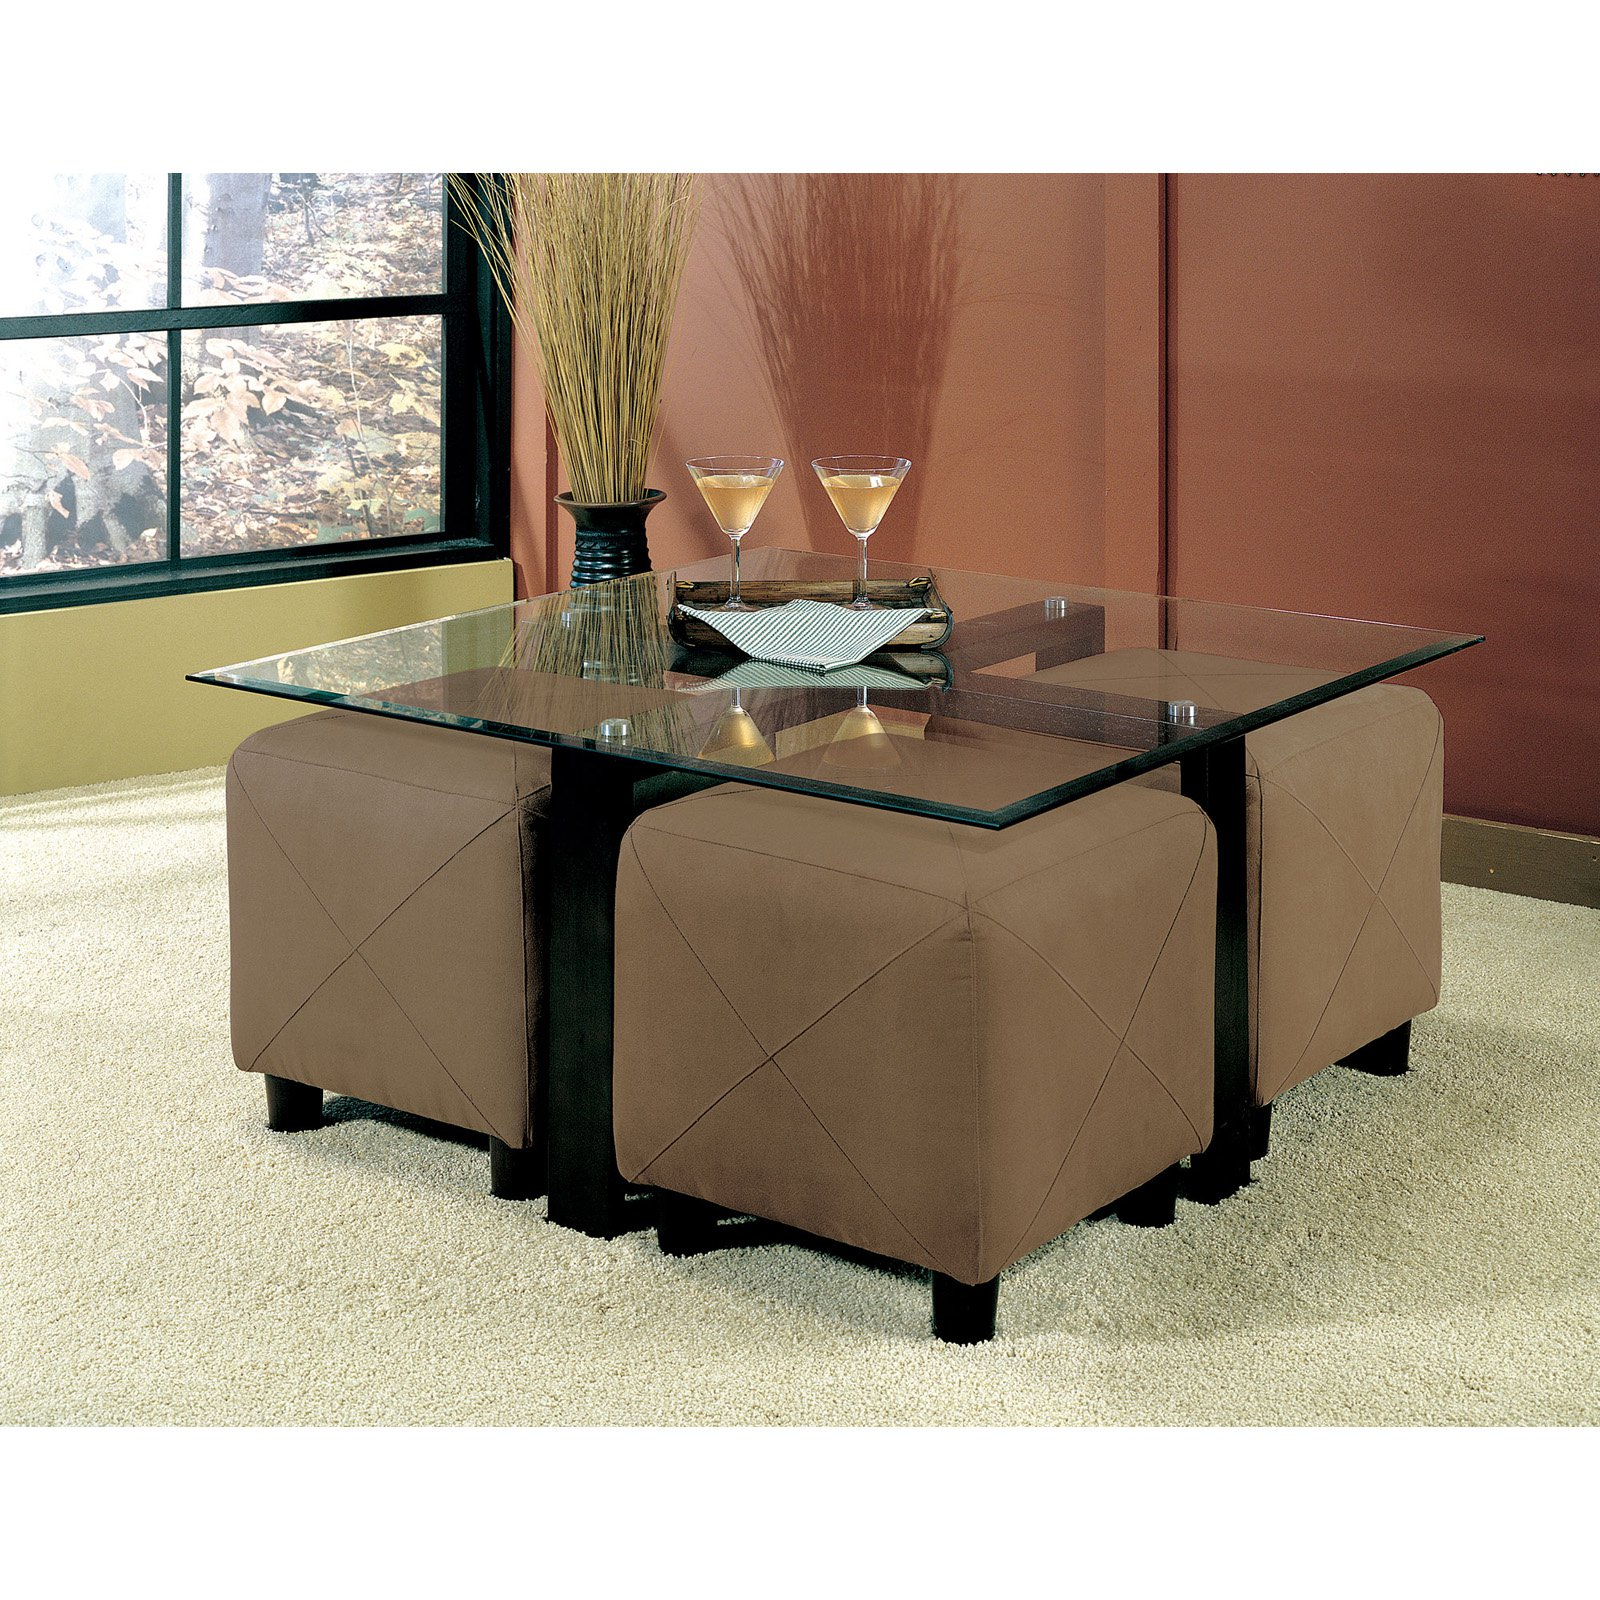 Coaster Furniture Glass Top Square Coffee Table Walmart